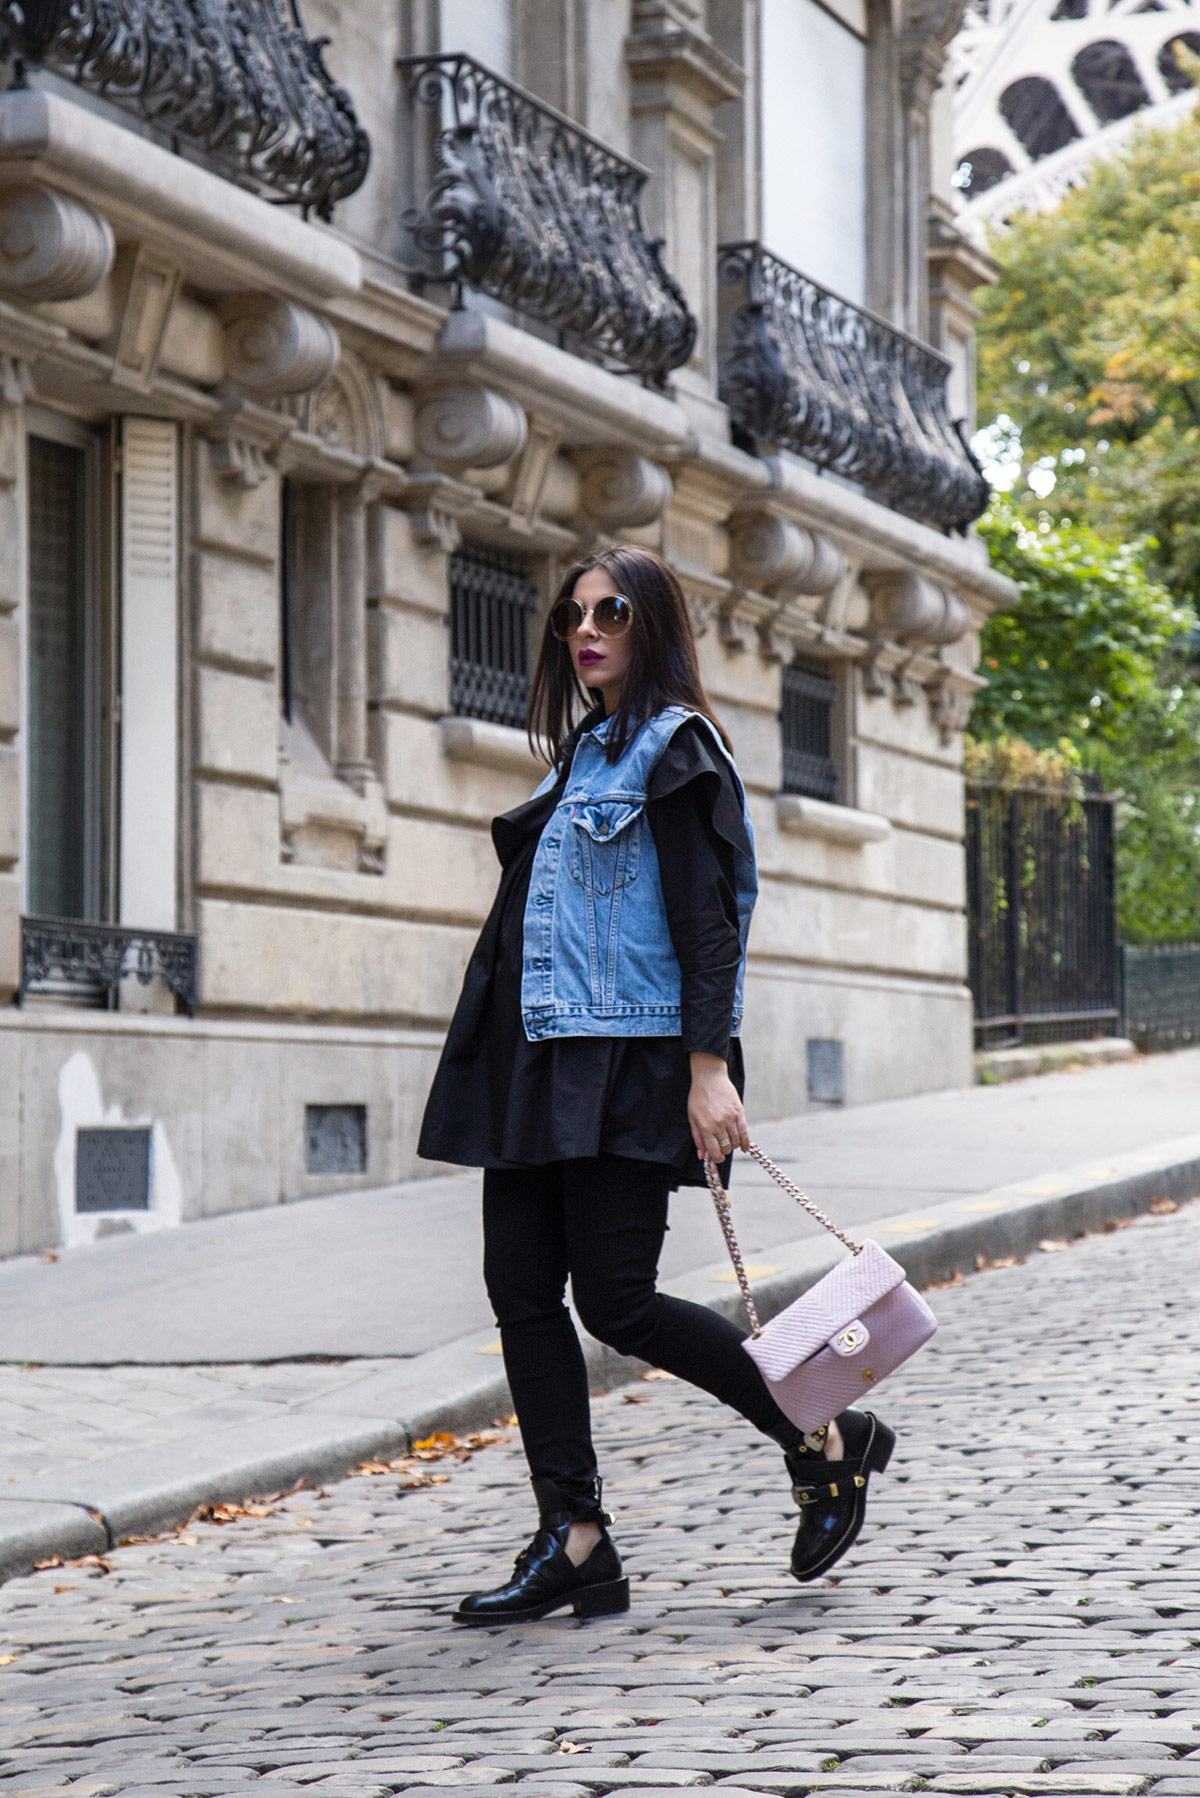 off-duty total black look with a pop of color by Stella Asteria - Lifestyle and Fashion Blogger - Paris Street Style inspiration, pregnancy style and how to dress the bump - pink Chanel bag and Balenciaga combat boots